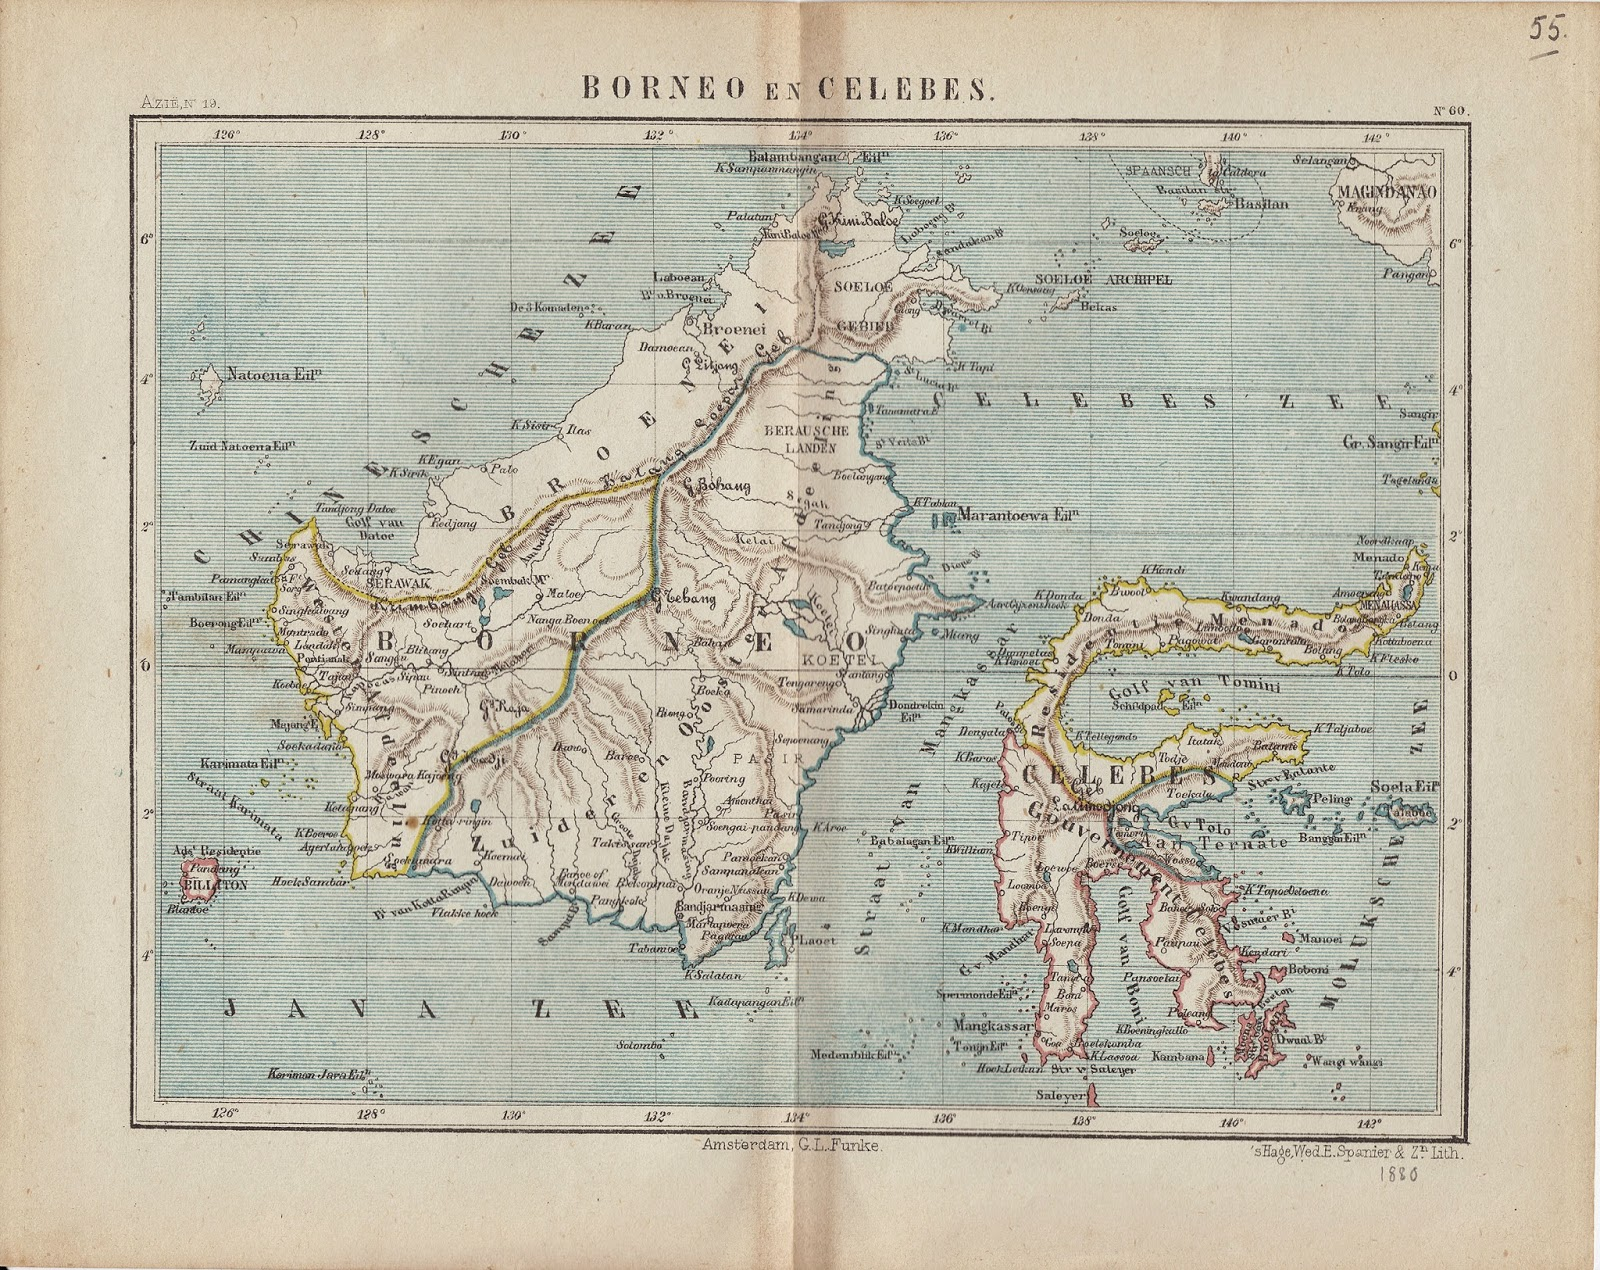 My North Borneo Stamps Some Old Maps Of Borneo - Amsterdam old map